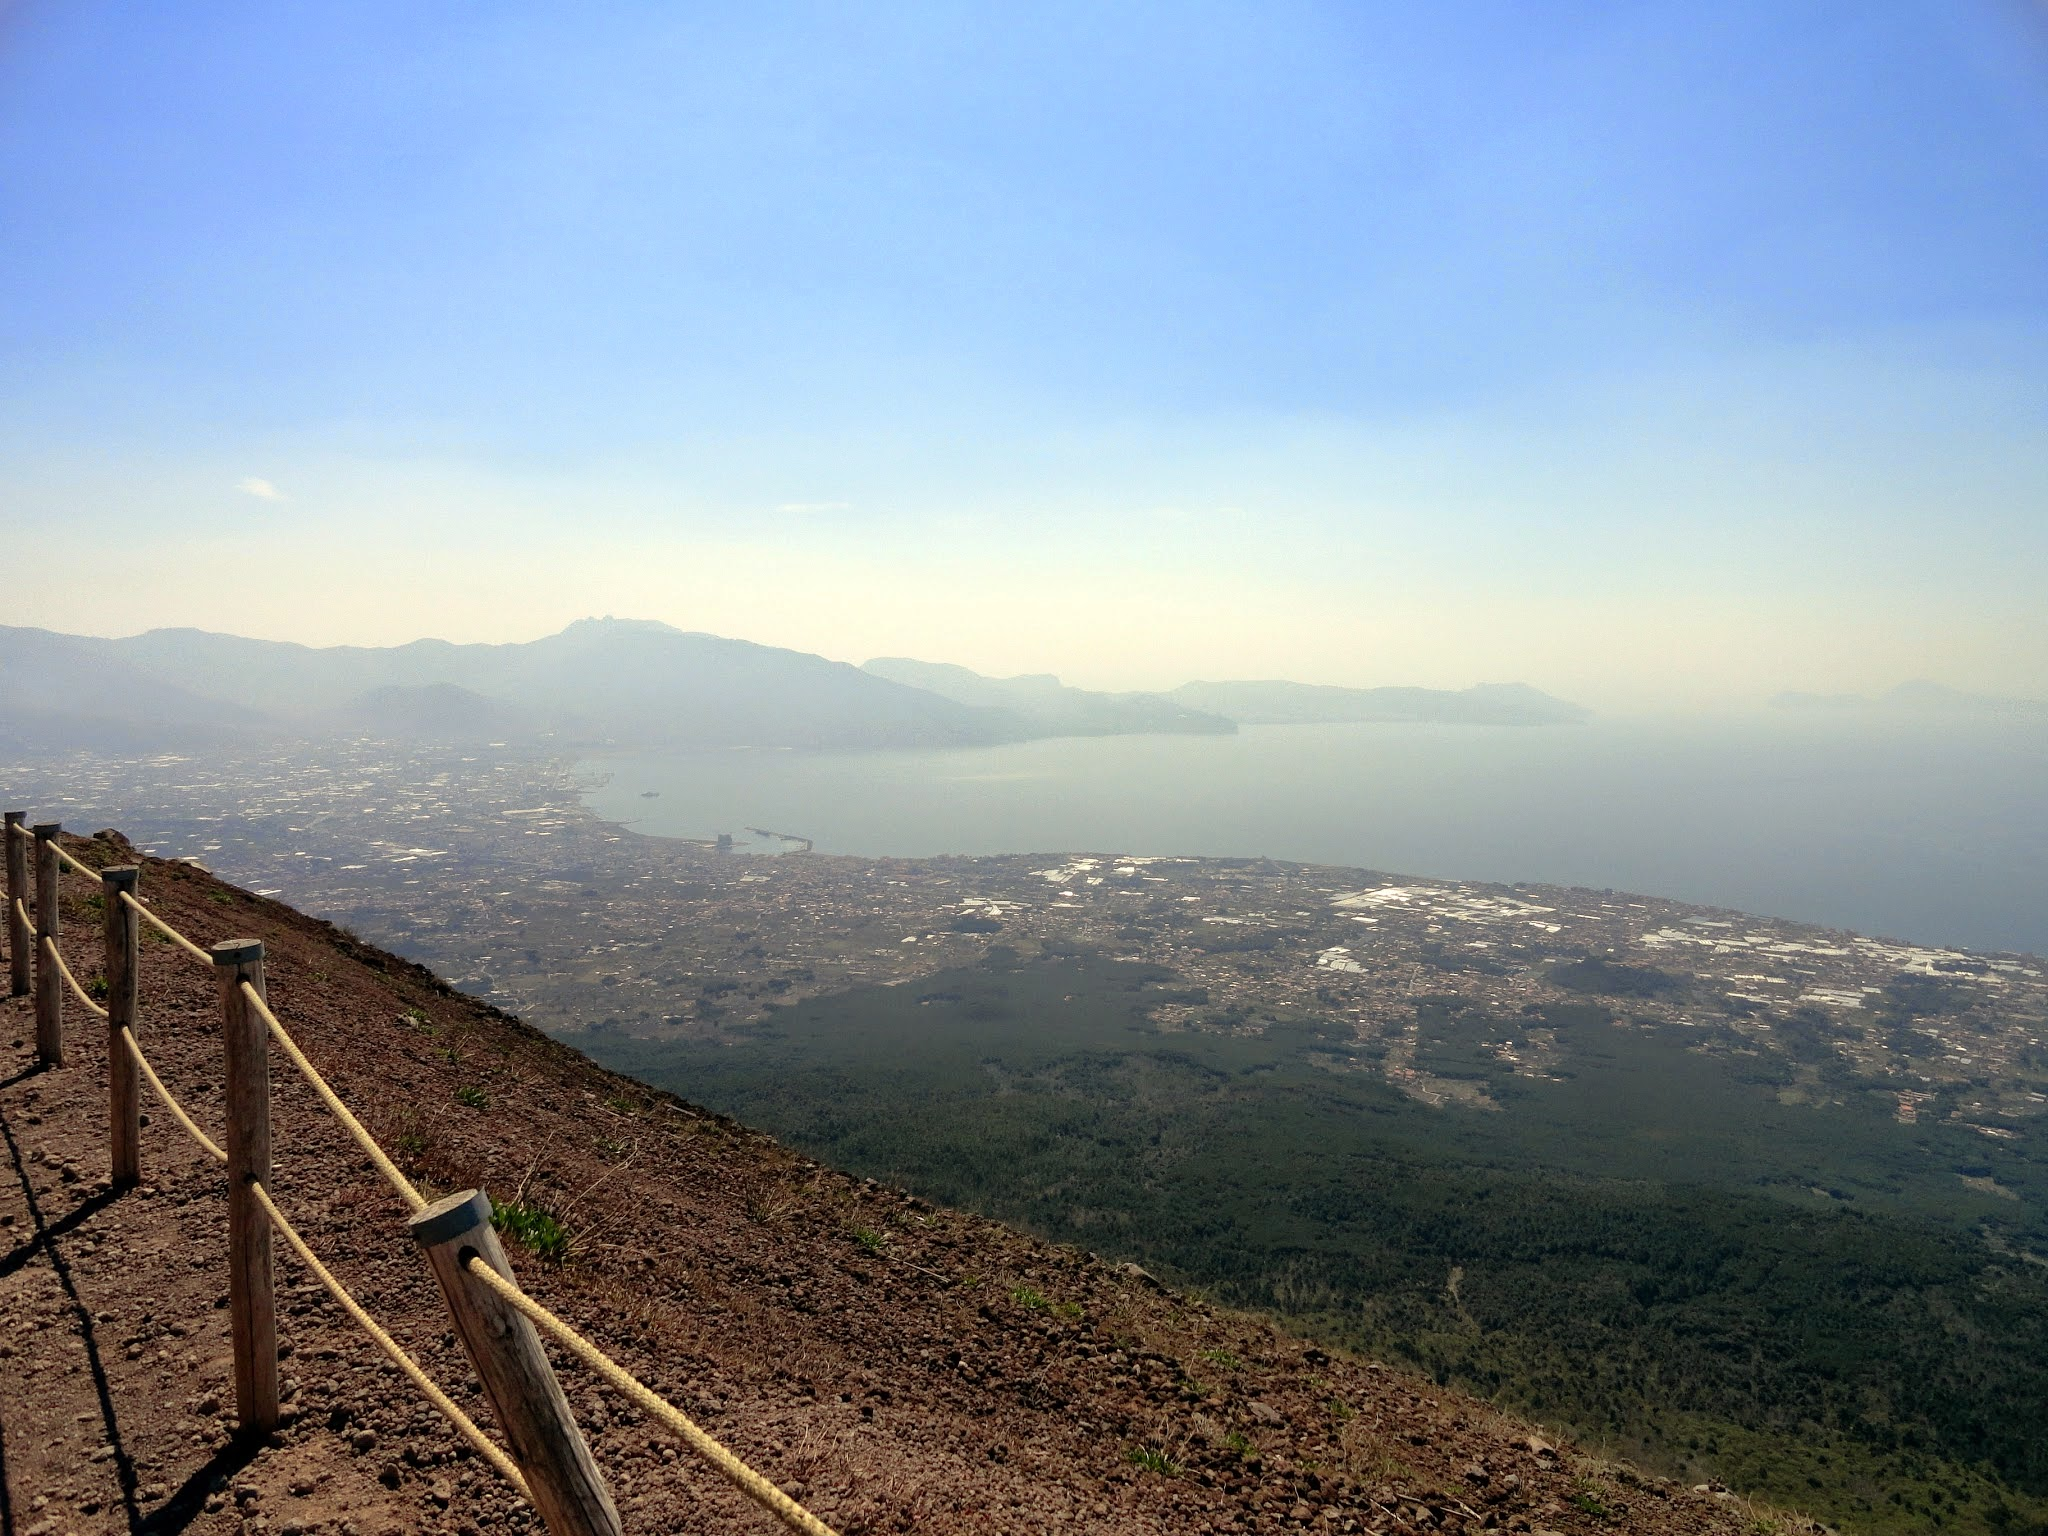 Climbed to the top of Mt. Vesuvius